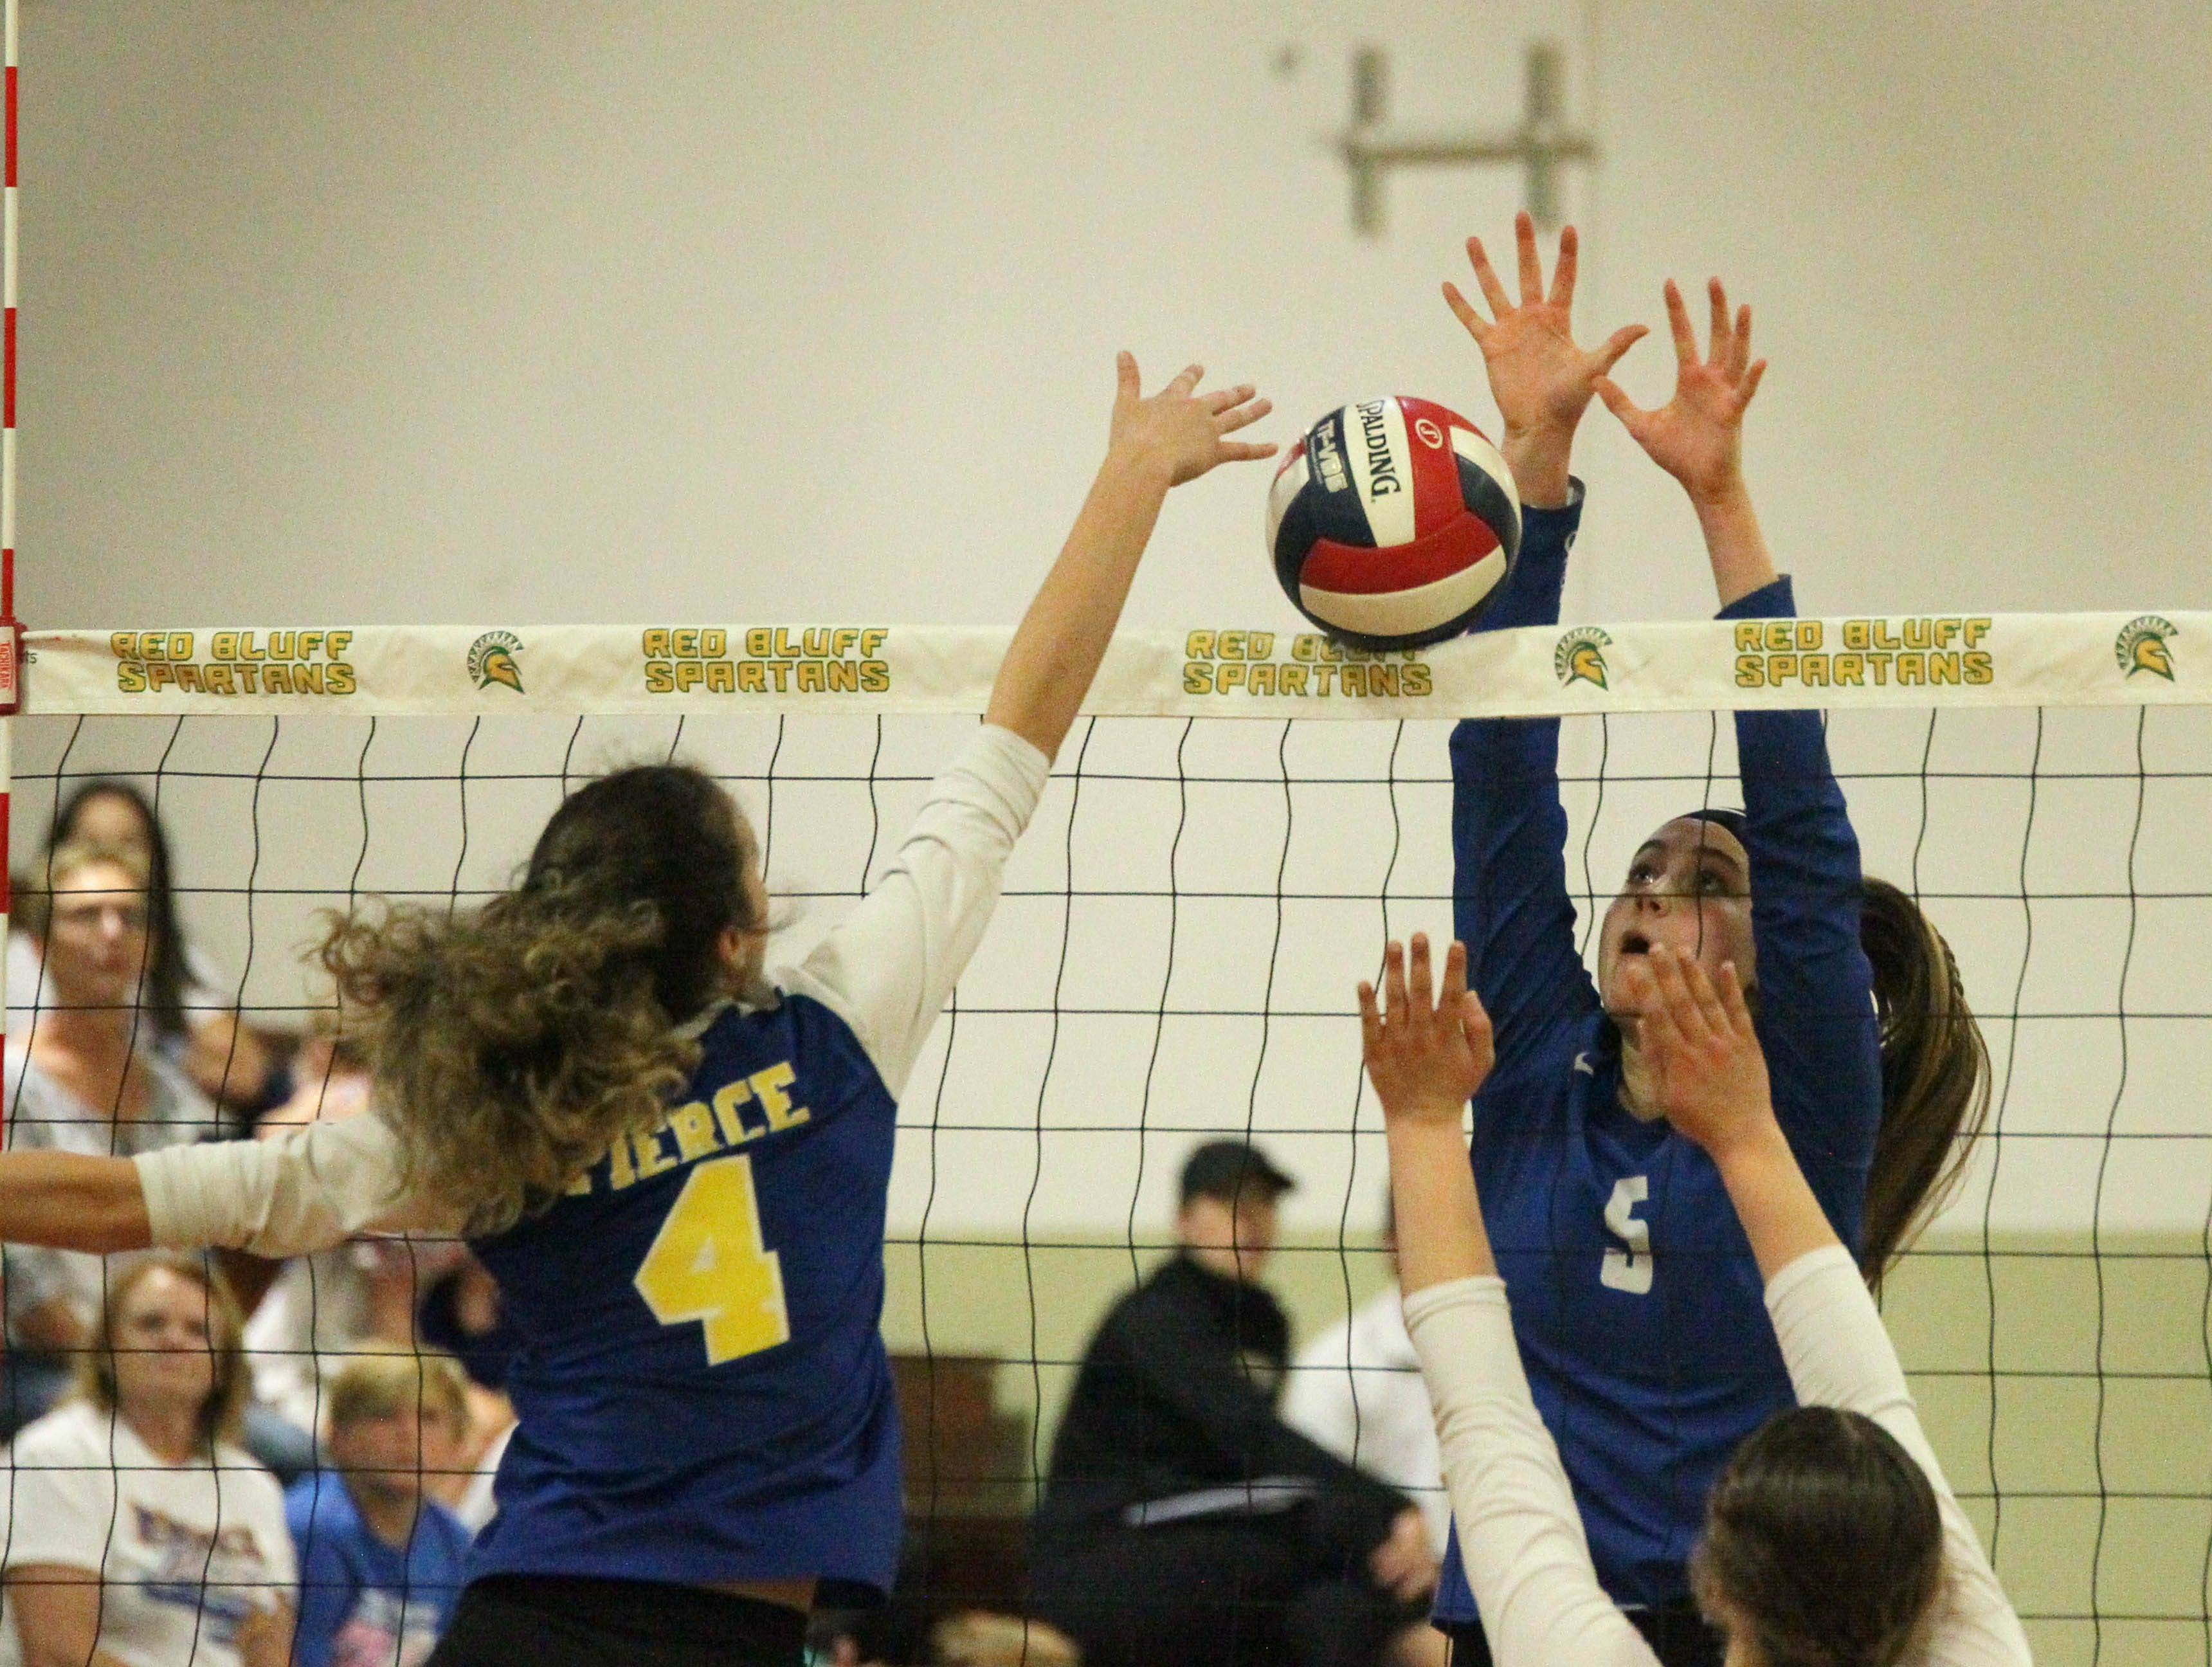 Madi Friebel (5) attempts to block a shot by Pierce in the Division IV Northern Section volleyball championship on Saturday, Nov. 3. Pierce won the match in three sets over U-Prep, 25-23, 25-21, 25-22.